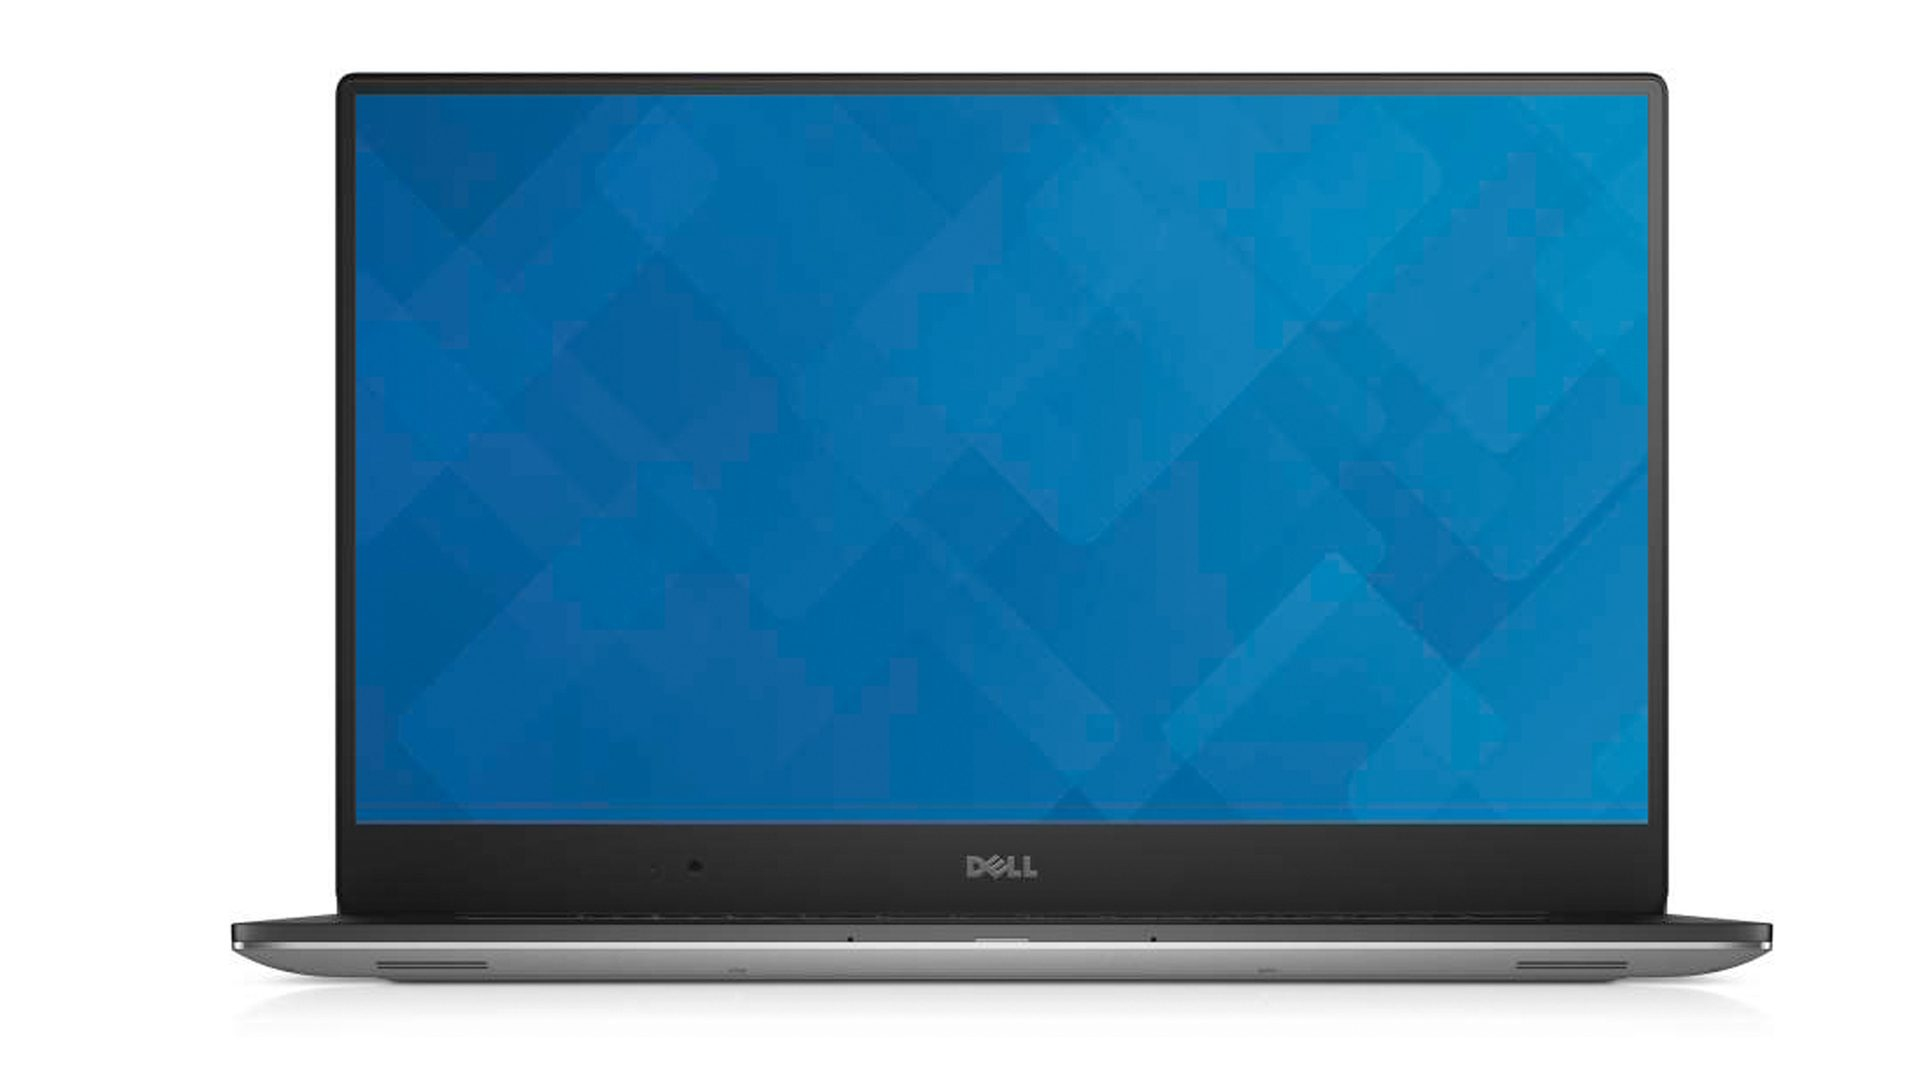 Dell-XPS-15-9550-3813-Ultrabook-Ansichten_2